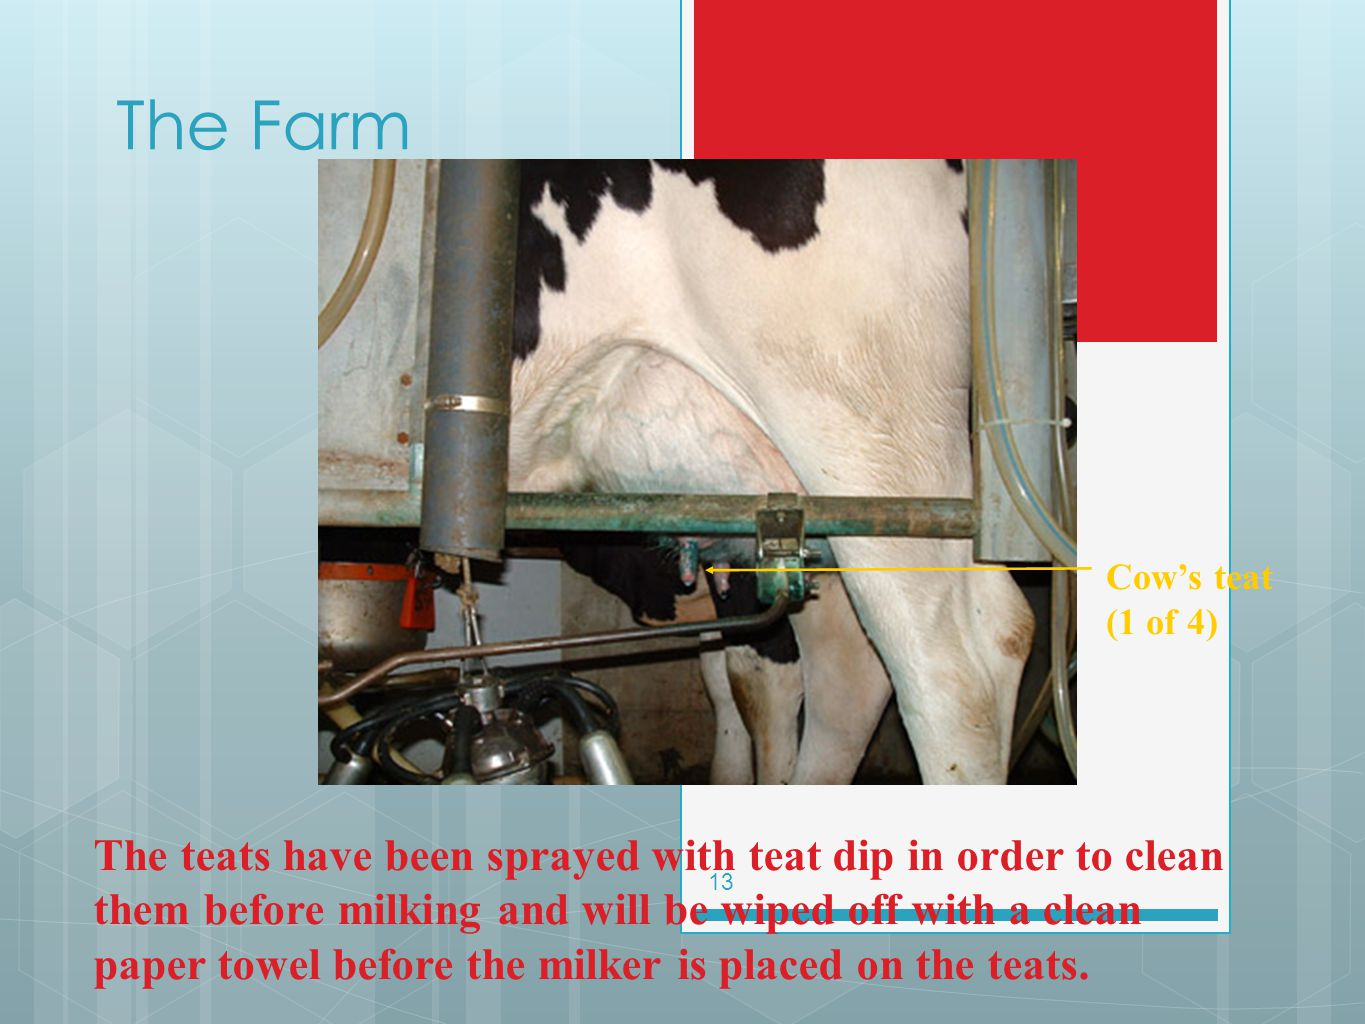 The Farm Cow's teat (1 of 4)